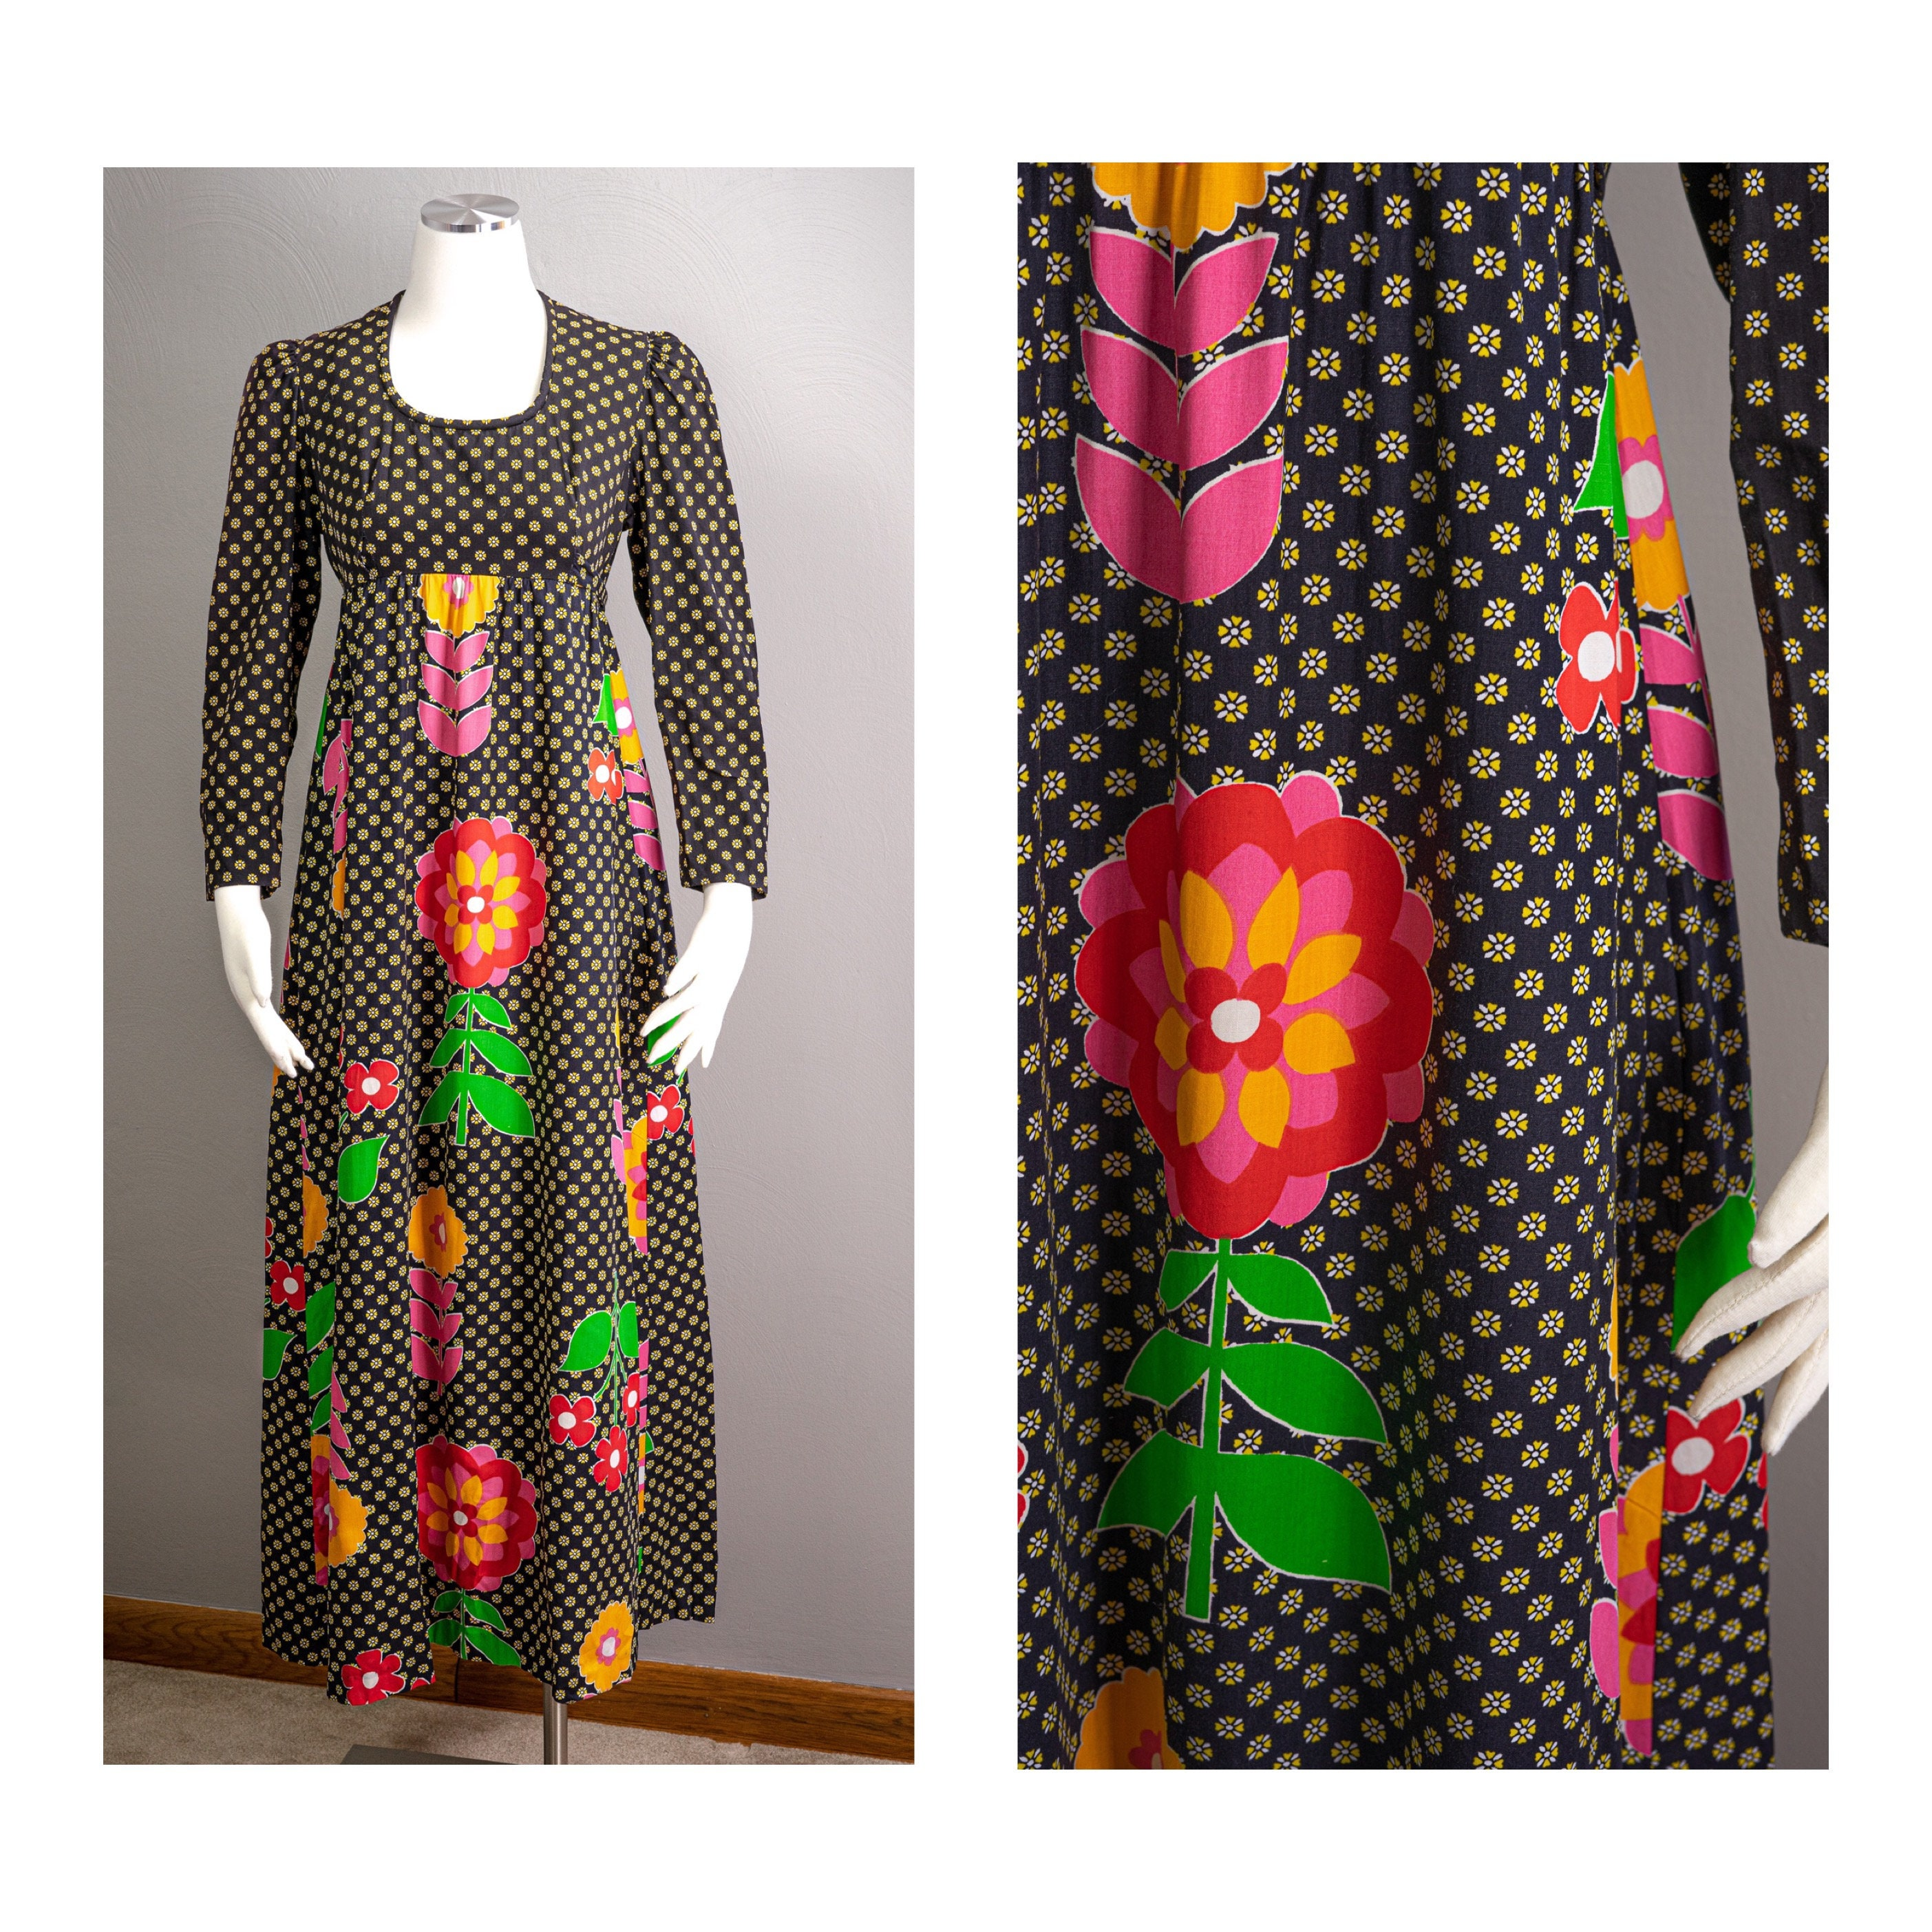 Vintage Scarf Styles -1920s to 1960s Fun  Vibrant Vintage 70S Psychedelic Floral Print Cotton Dress, Loungewear, Empire Waist, Pockets, Prairie Style $0.00 AT vintagedancer.com